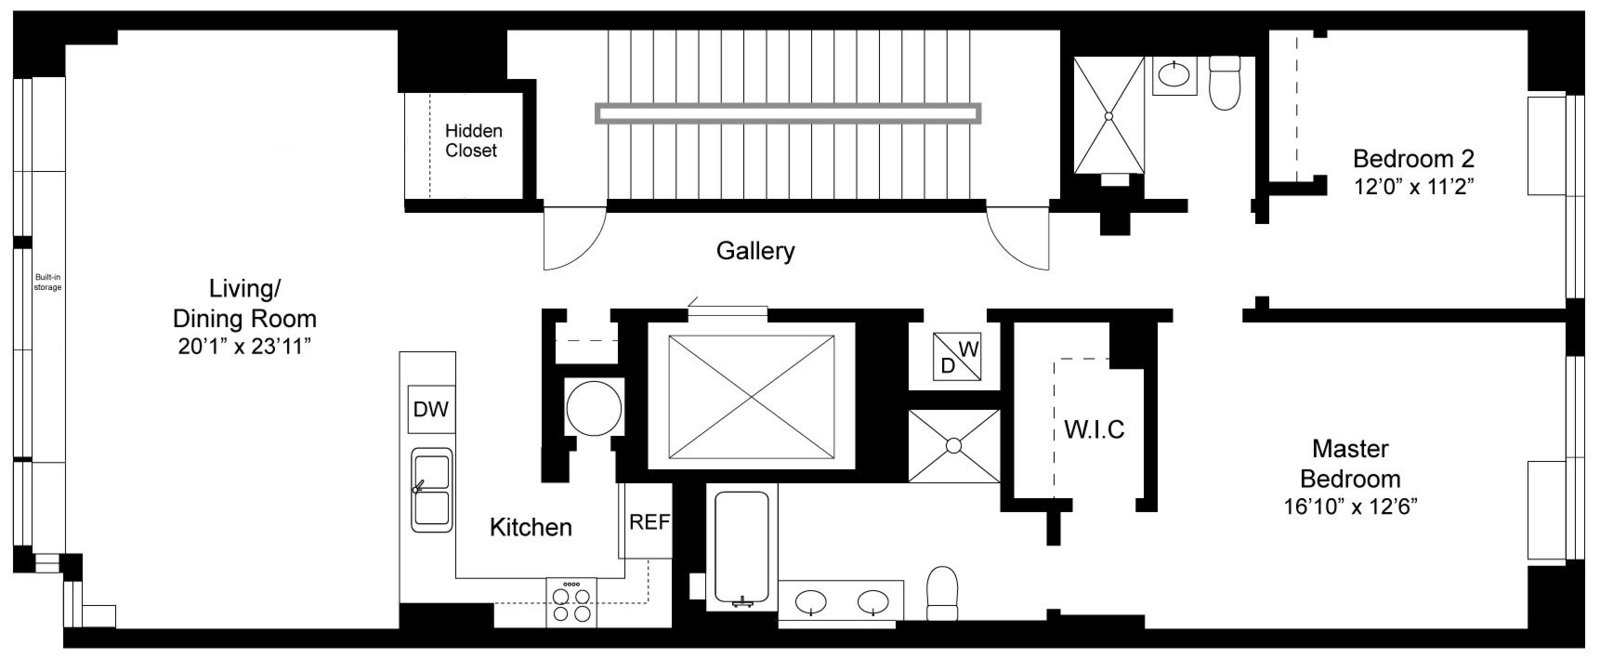 211 W 18 Floorplan no Logo